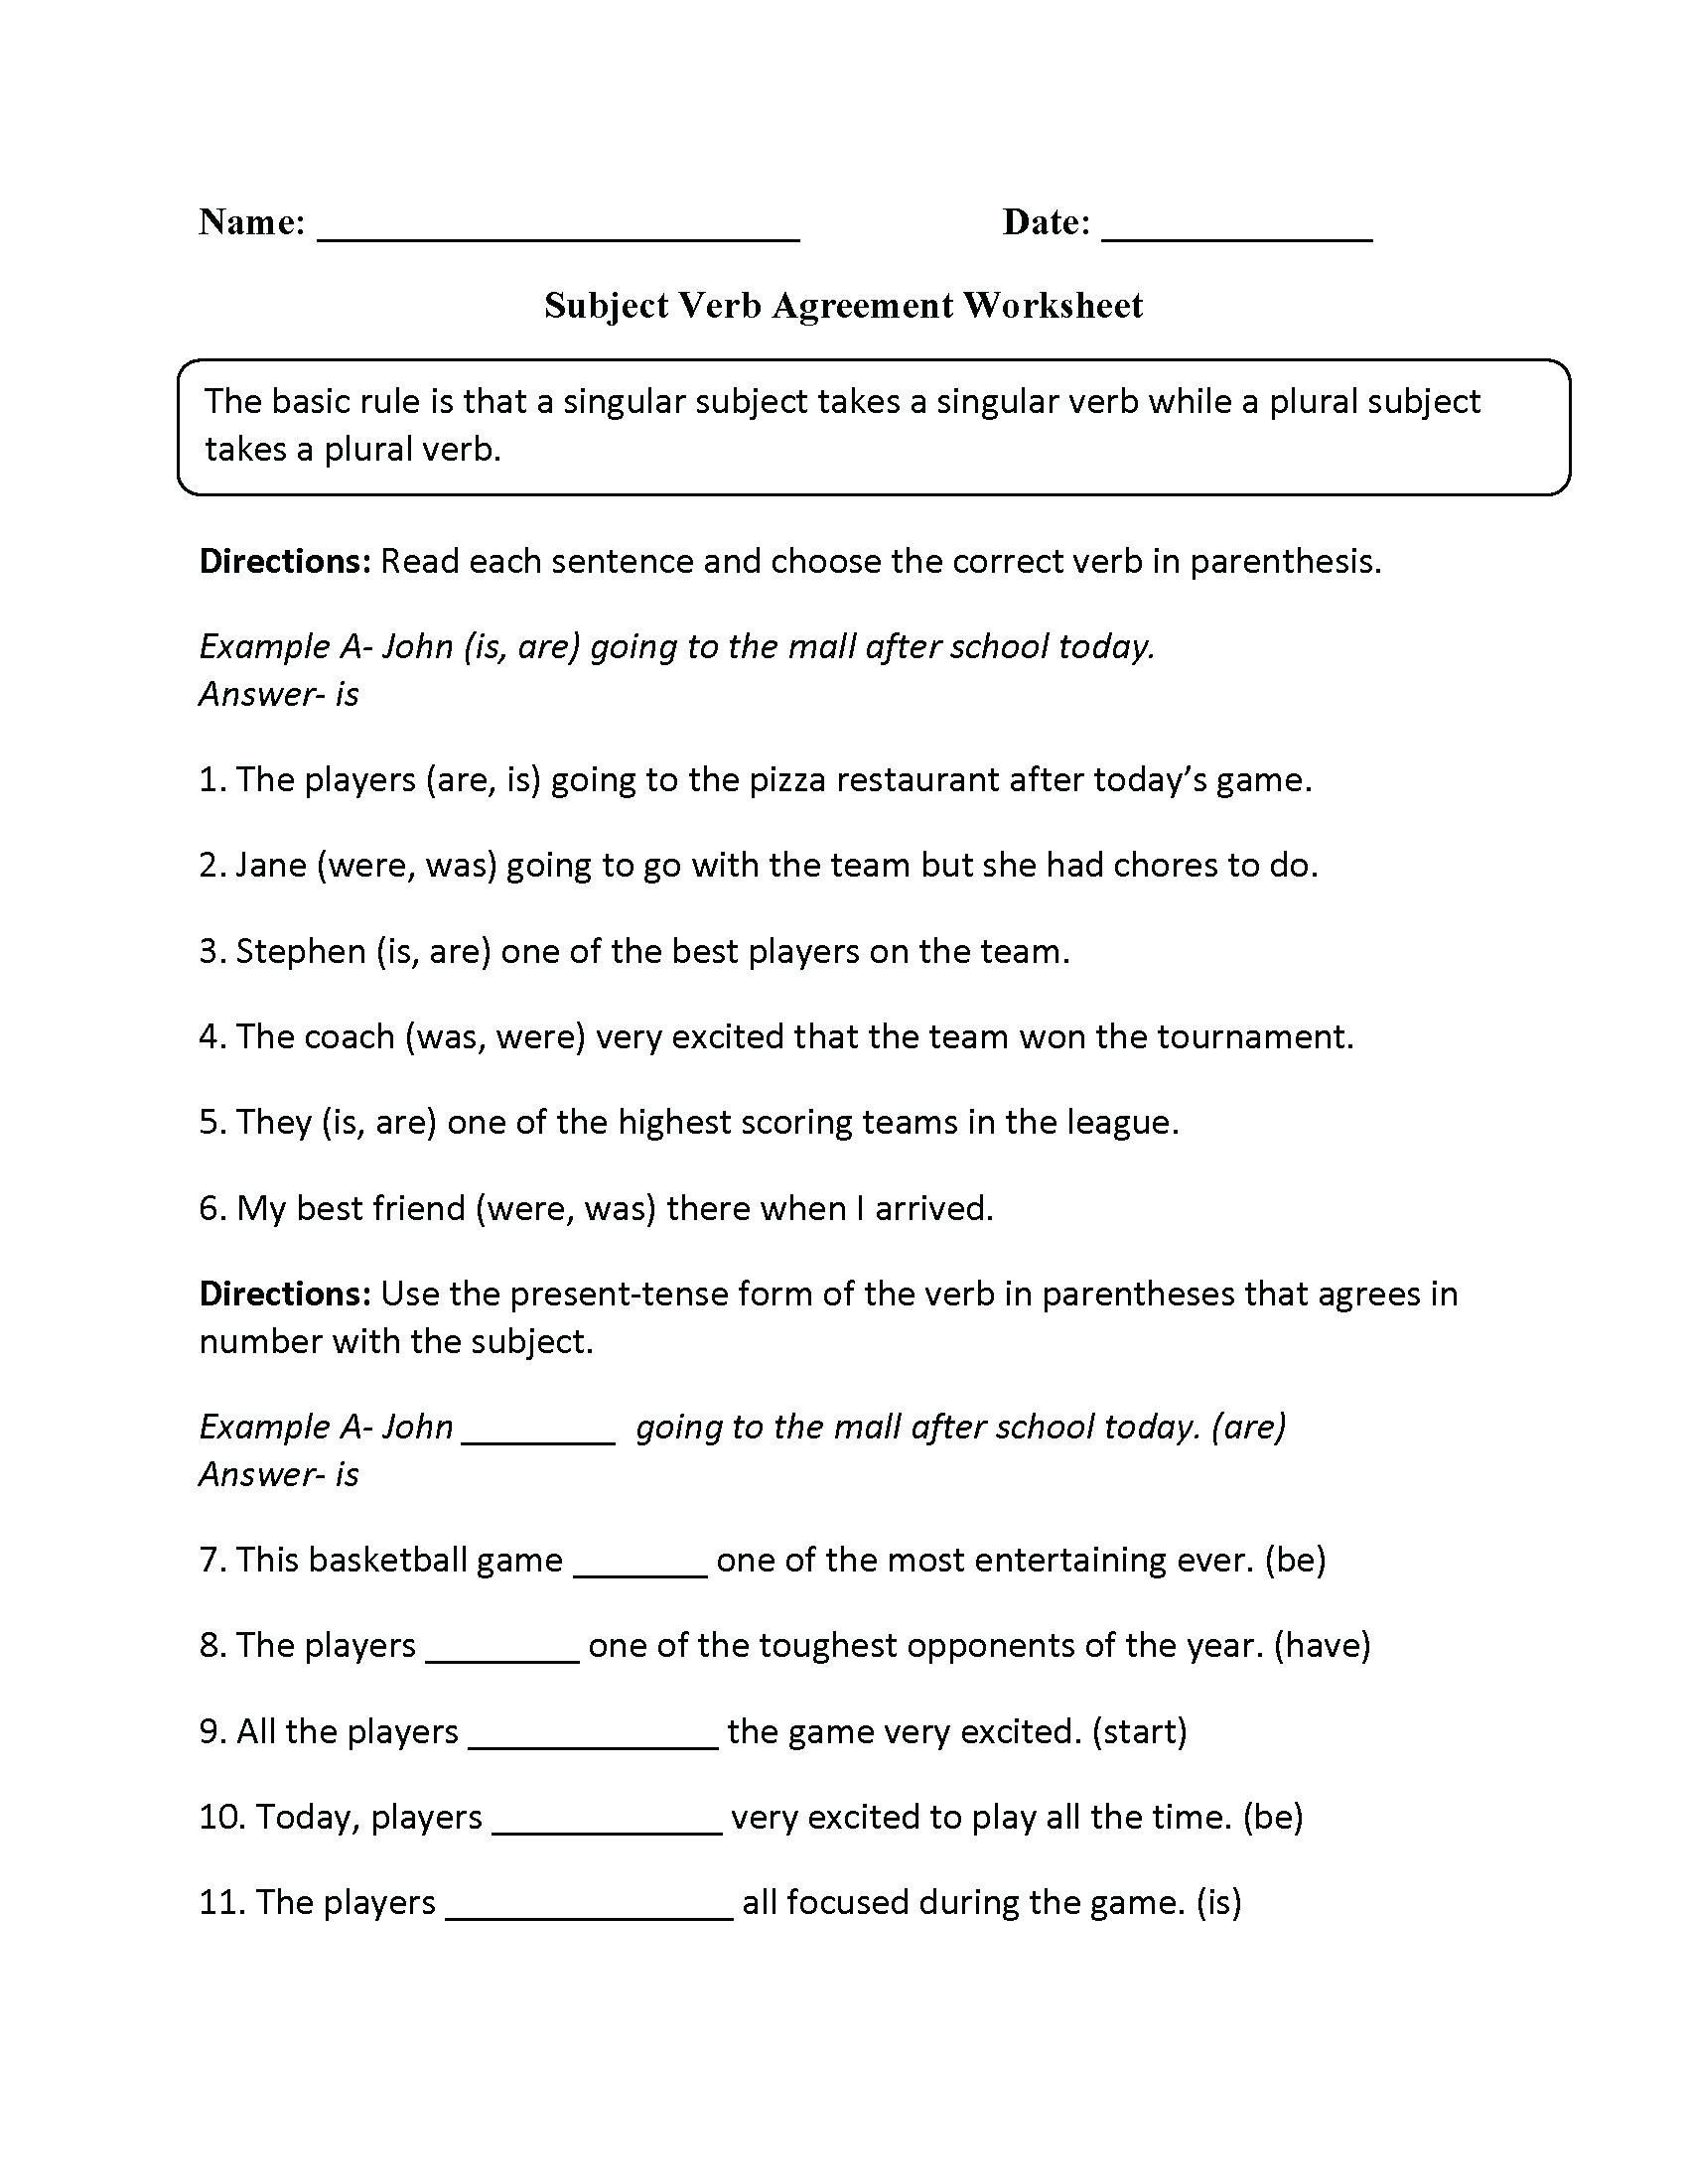 Grammar Worksheets for 8th Graders Pin On Educational Worksheets Template